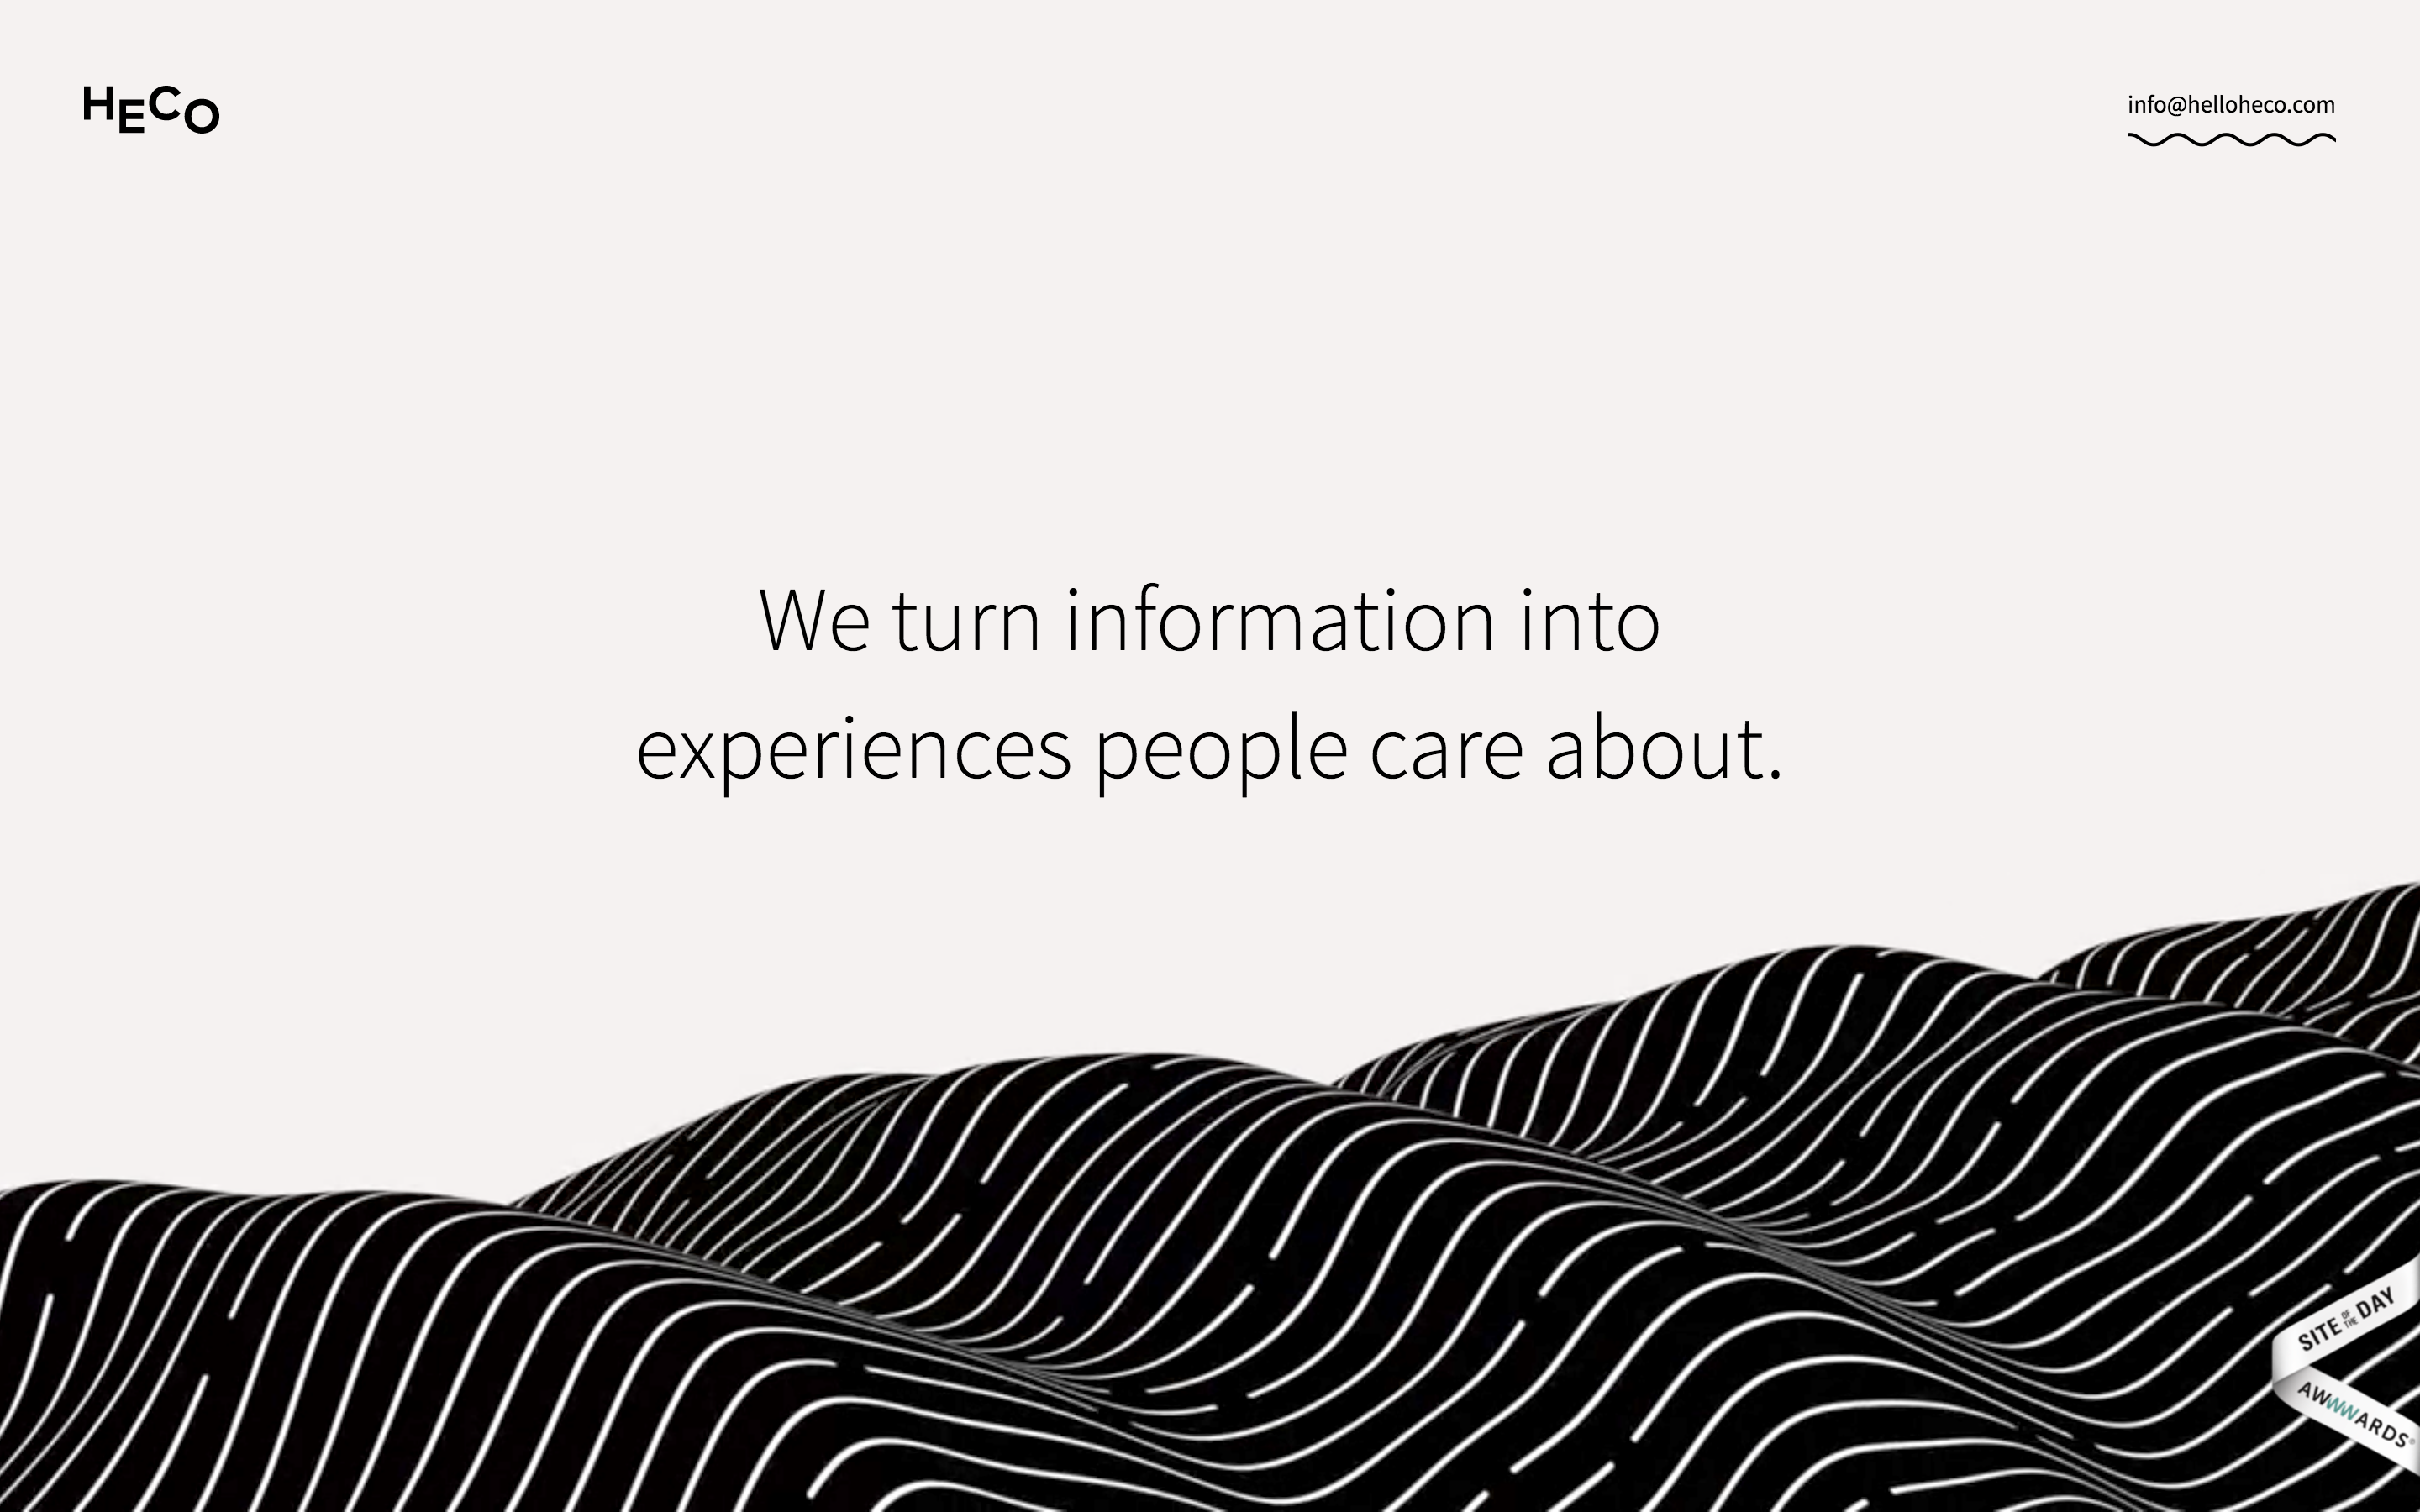 heco partners draws you into their website with its flowing movement